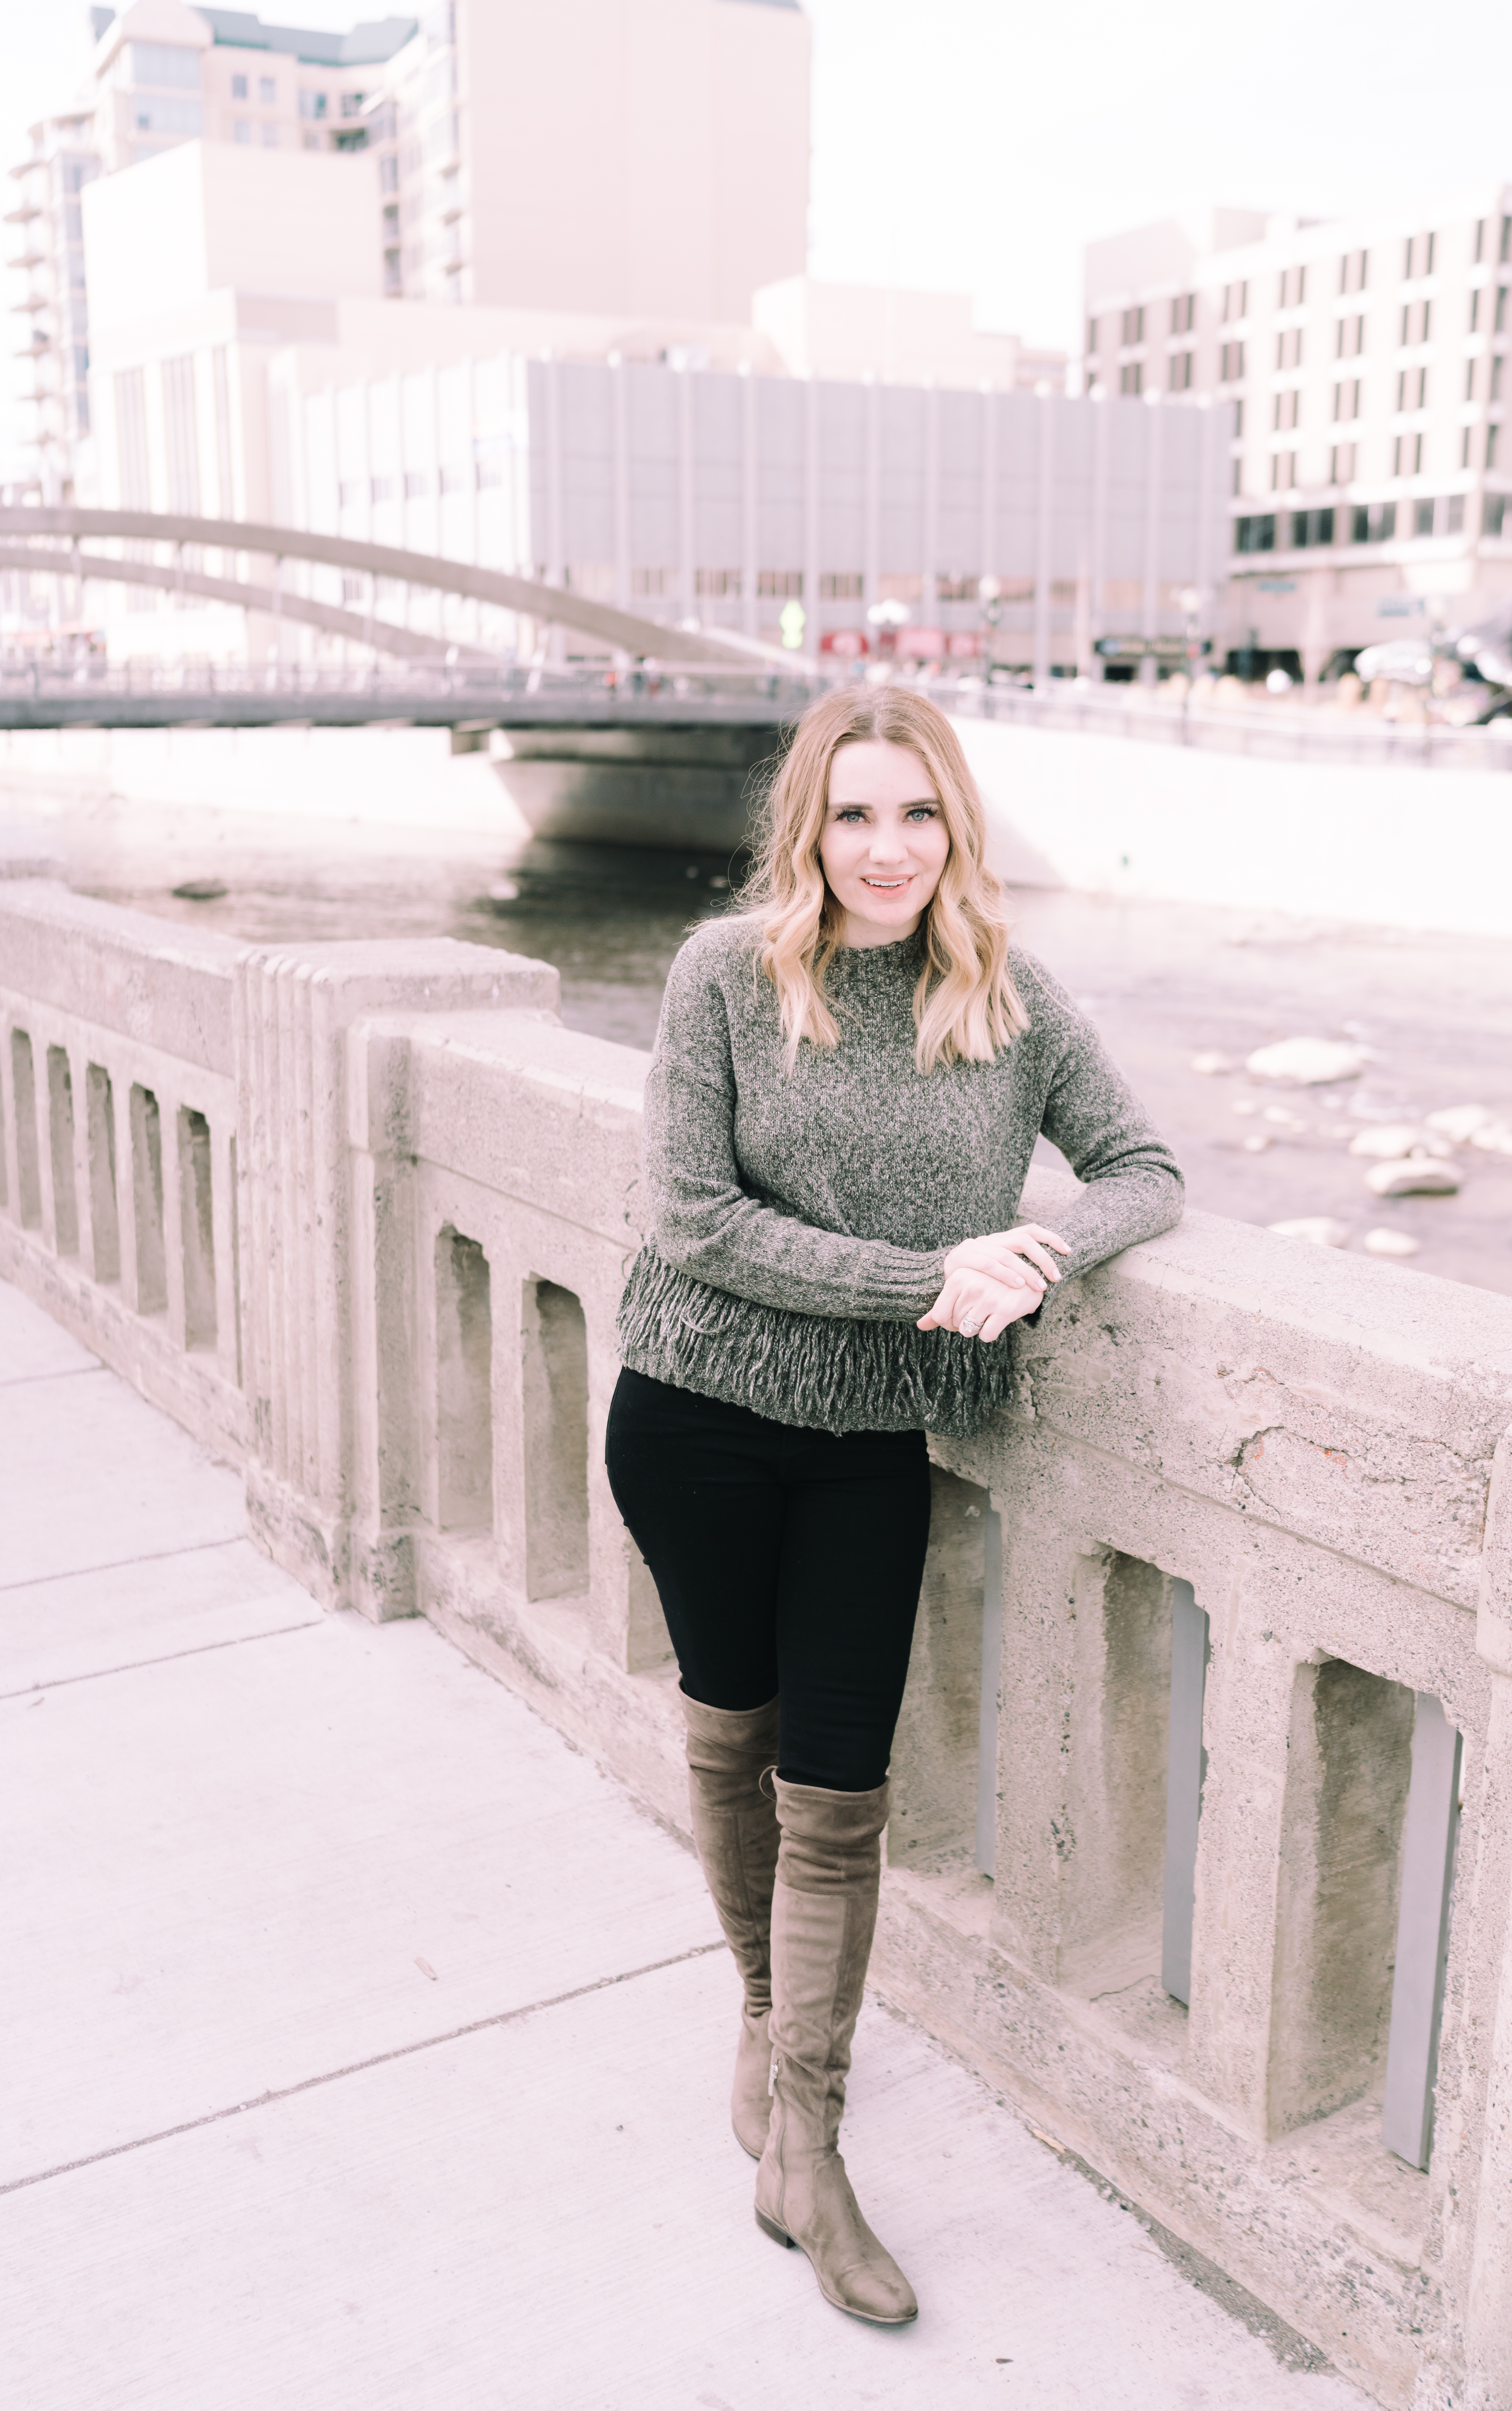 Memphis Fashion Blogger, Pretty in Pink Megan shares a full travel review of Reno, Nevada. Where to stay, what to wear, and what to see.